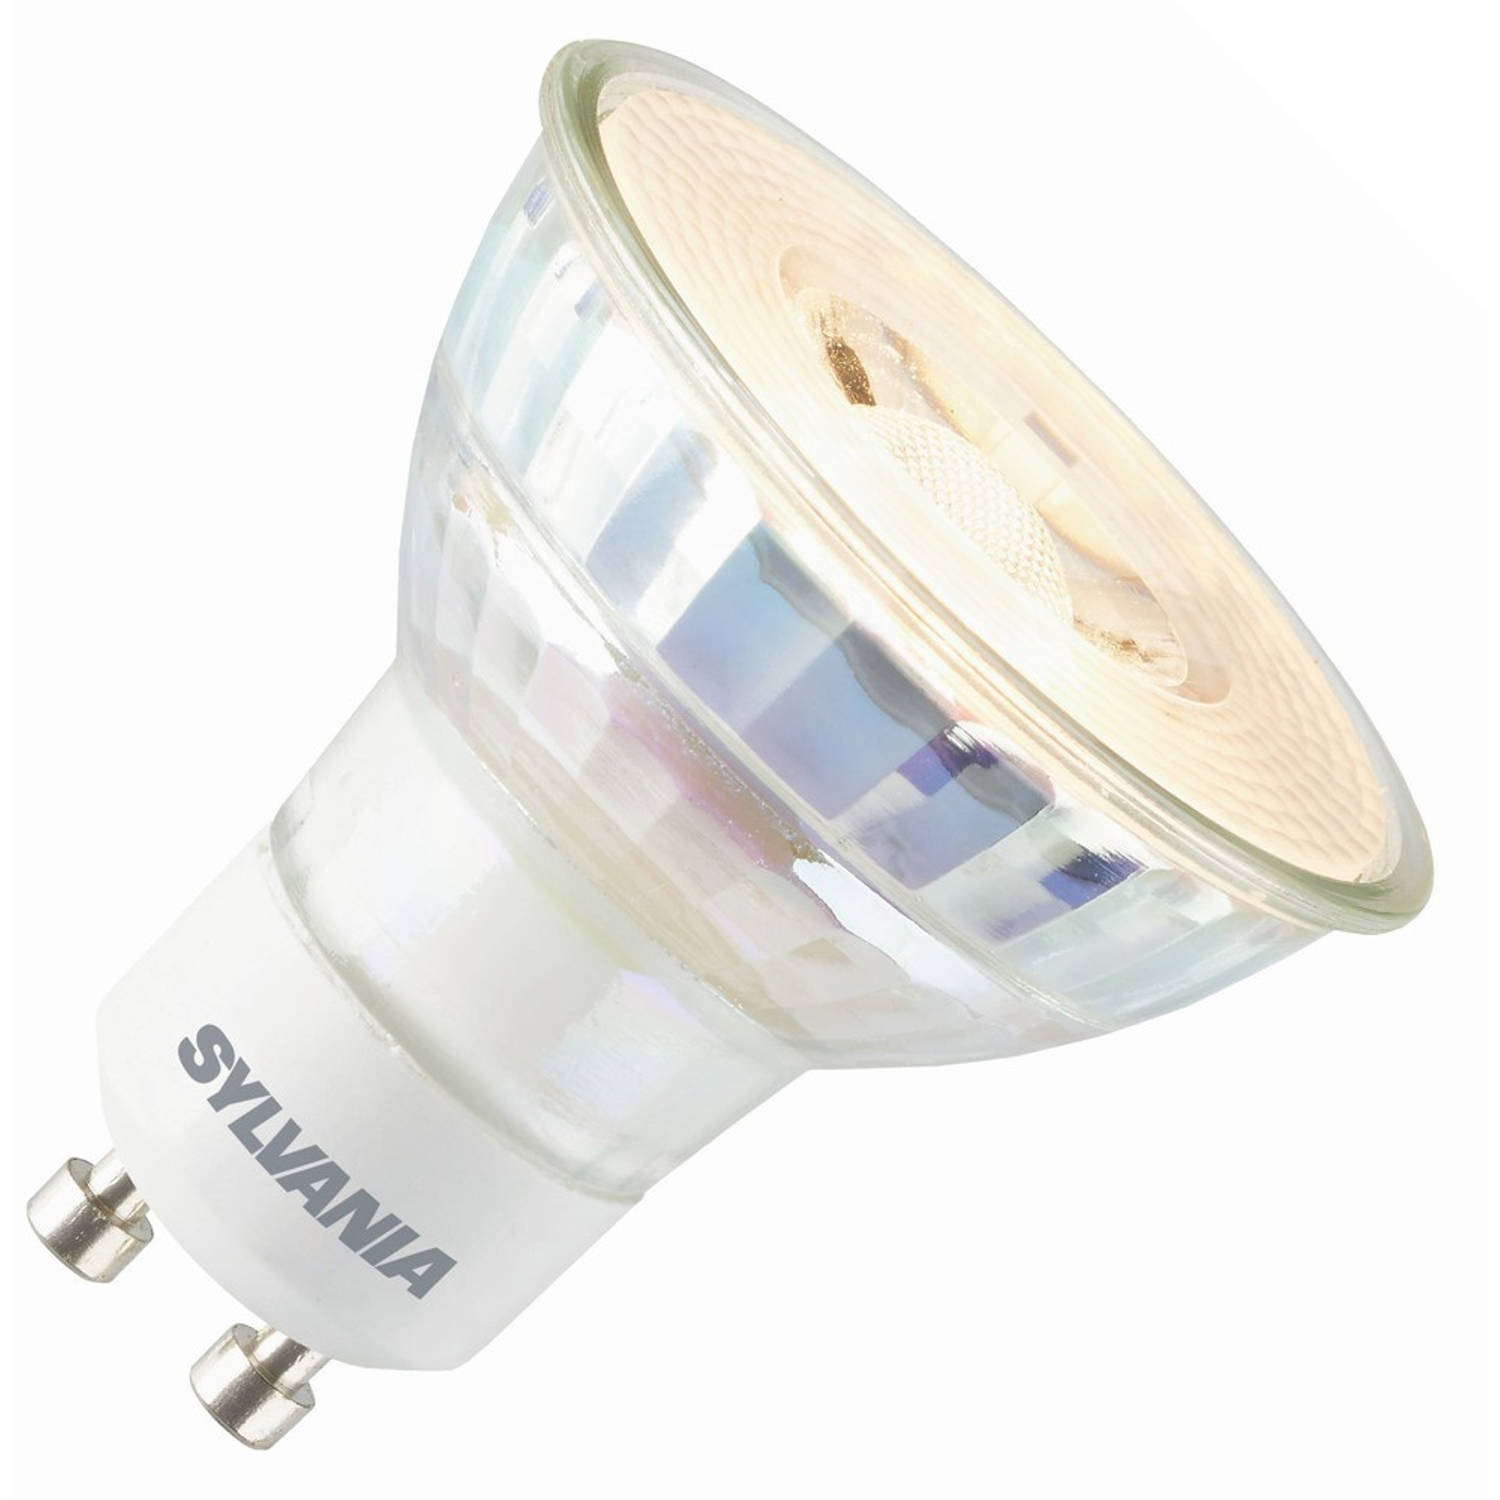 Sylvania led reflector 230v 3,3w (vervangt 25w) gu10 50mm 4000 koel-wit